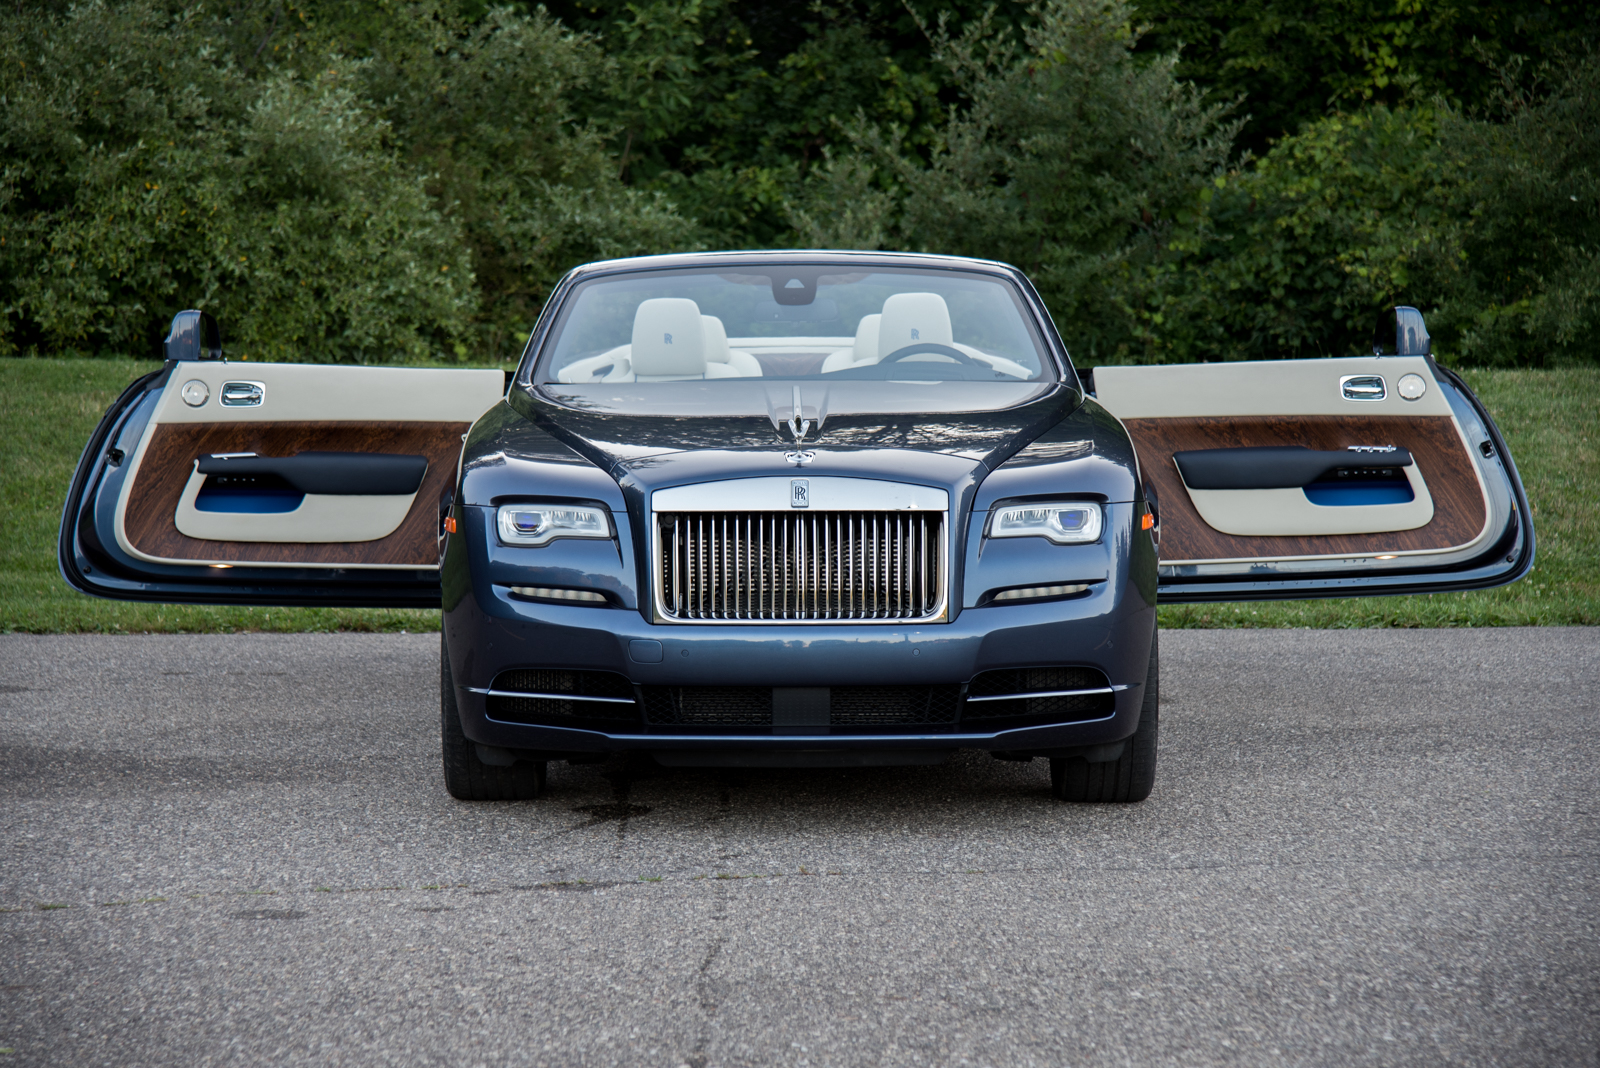 2017 Rolls-Royce Dawn Review - AutoGuide.com